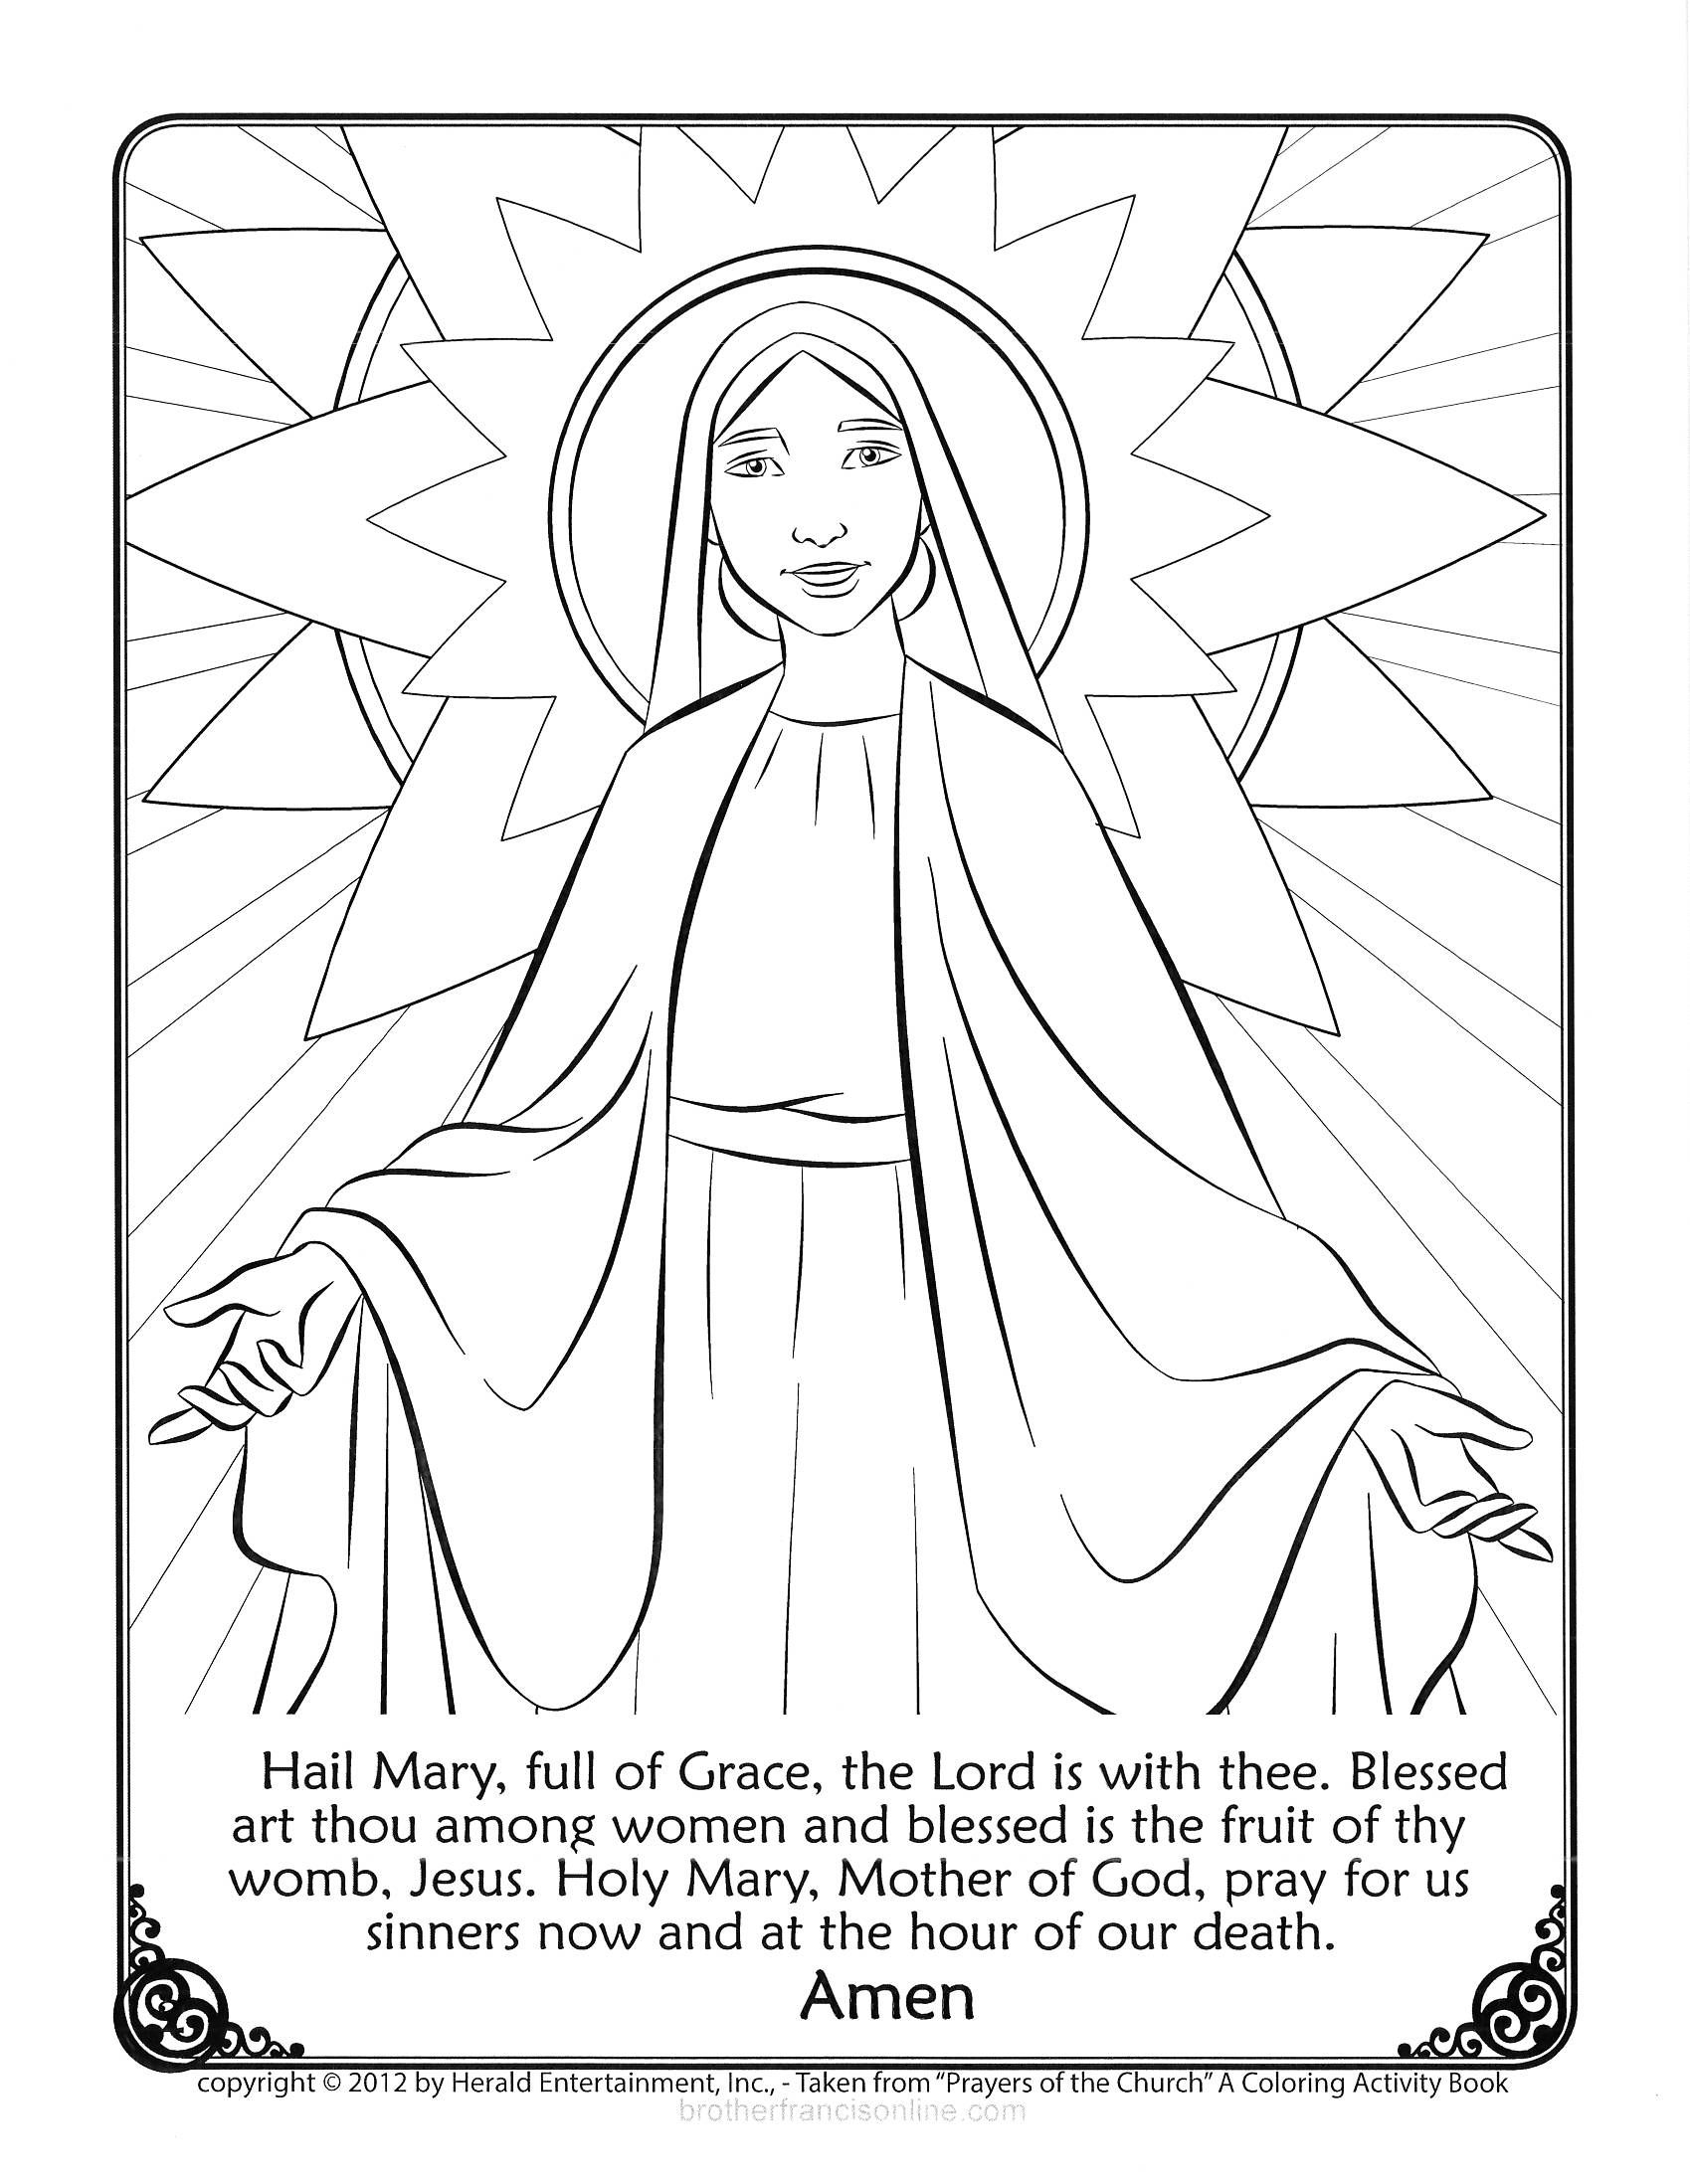 Mary Coloring Page With The Hail Mary Prayer Printed Below Color And Pray